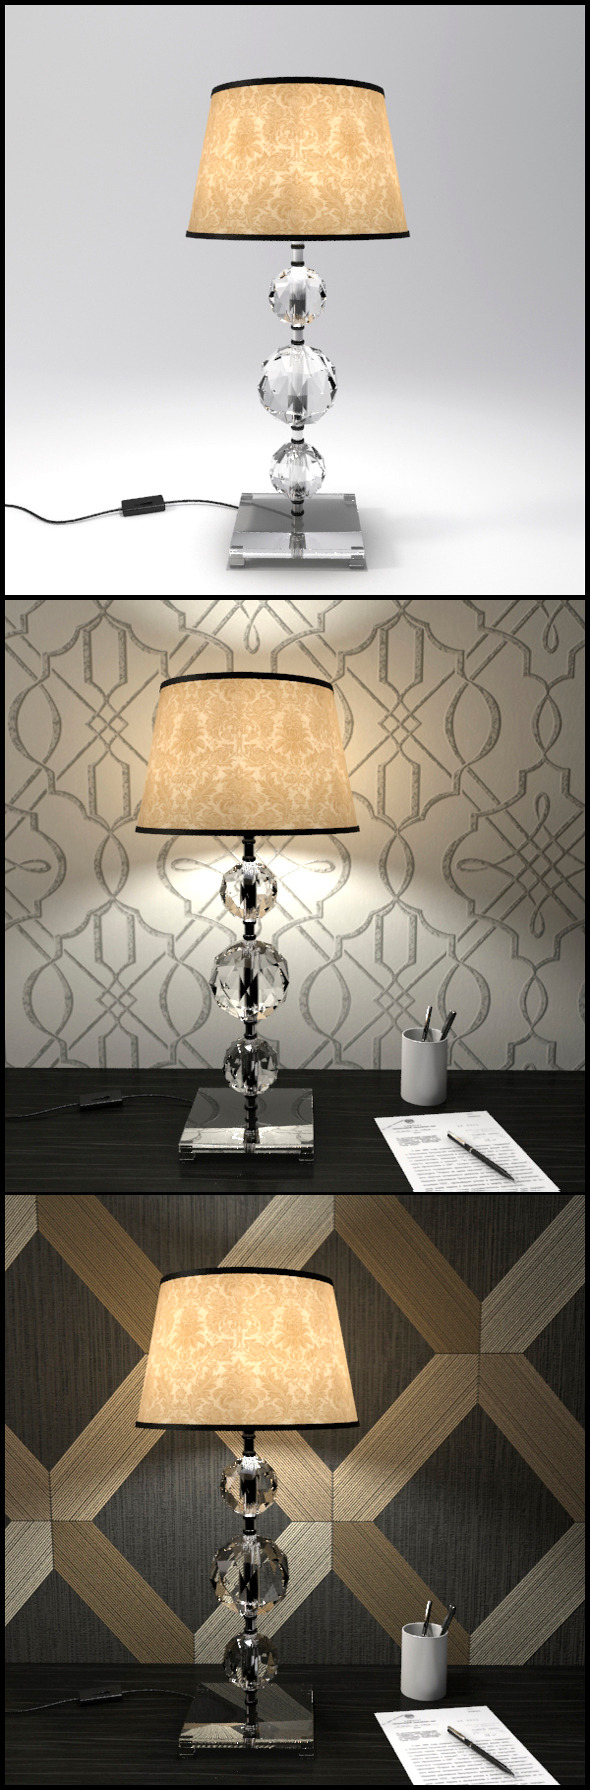 Glass Geosphere Table Lamp #6 - 3DOcean Item for Sale